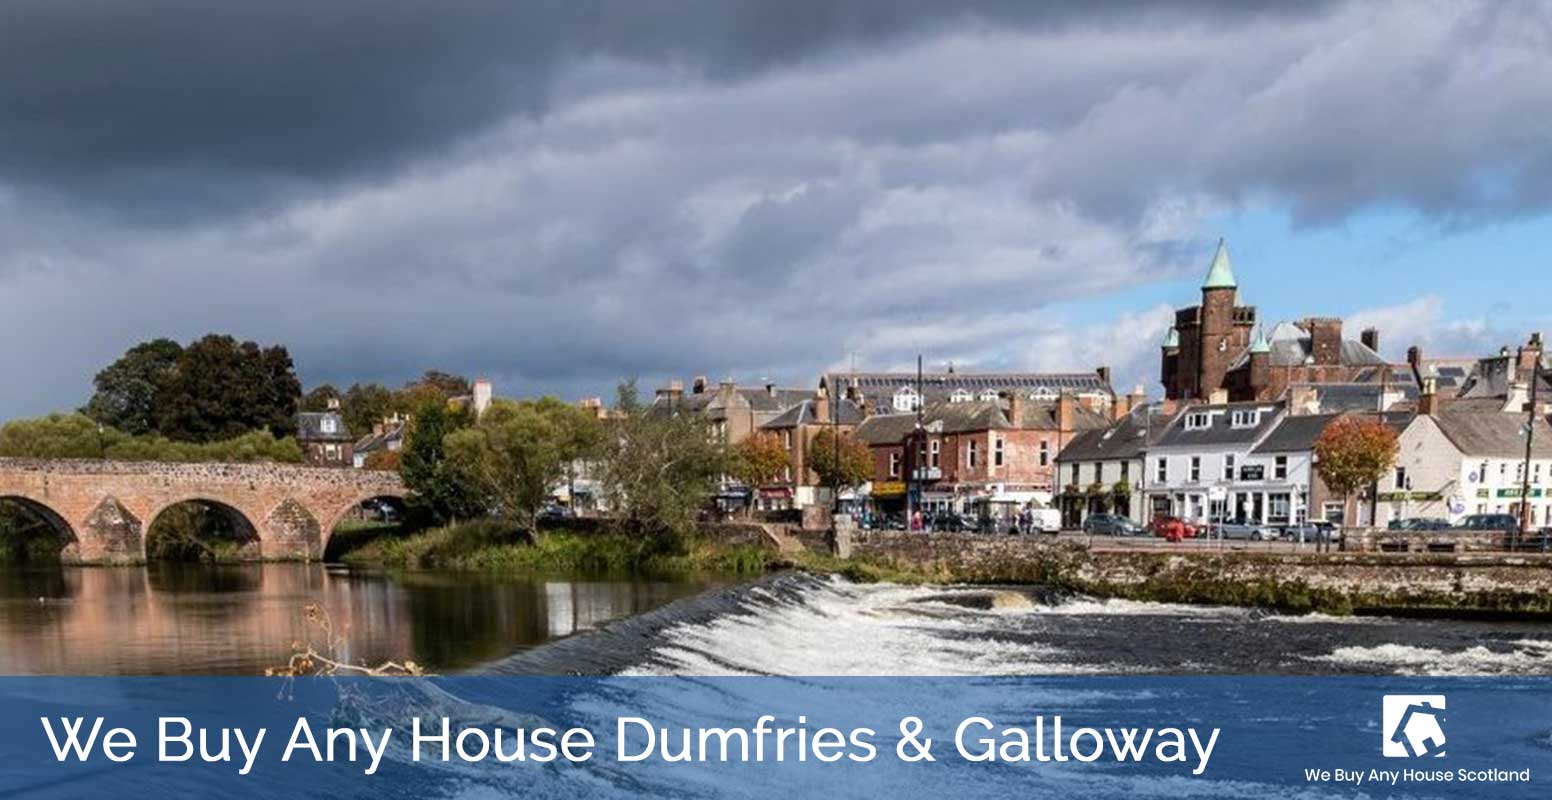 We Buy Any House Dumfries And Galloway